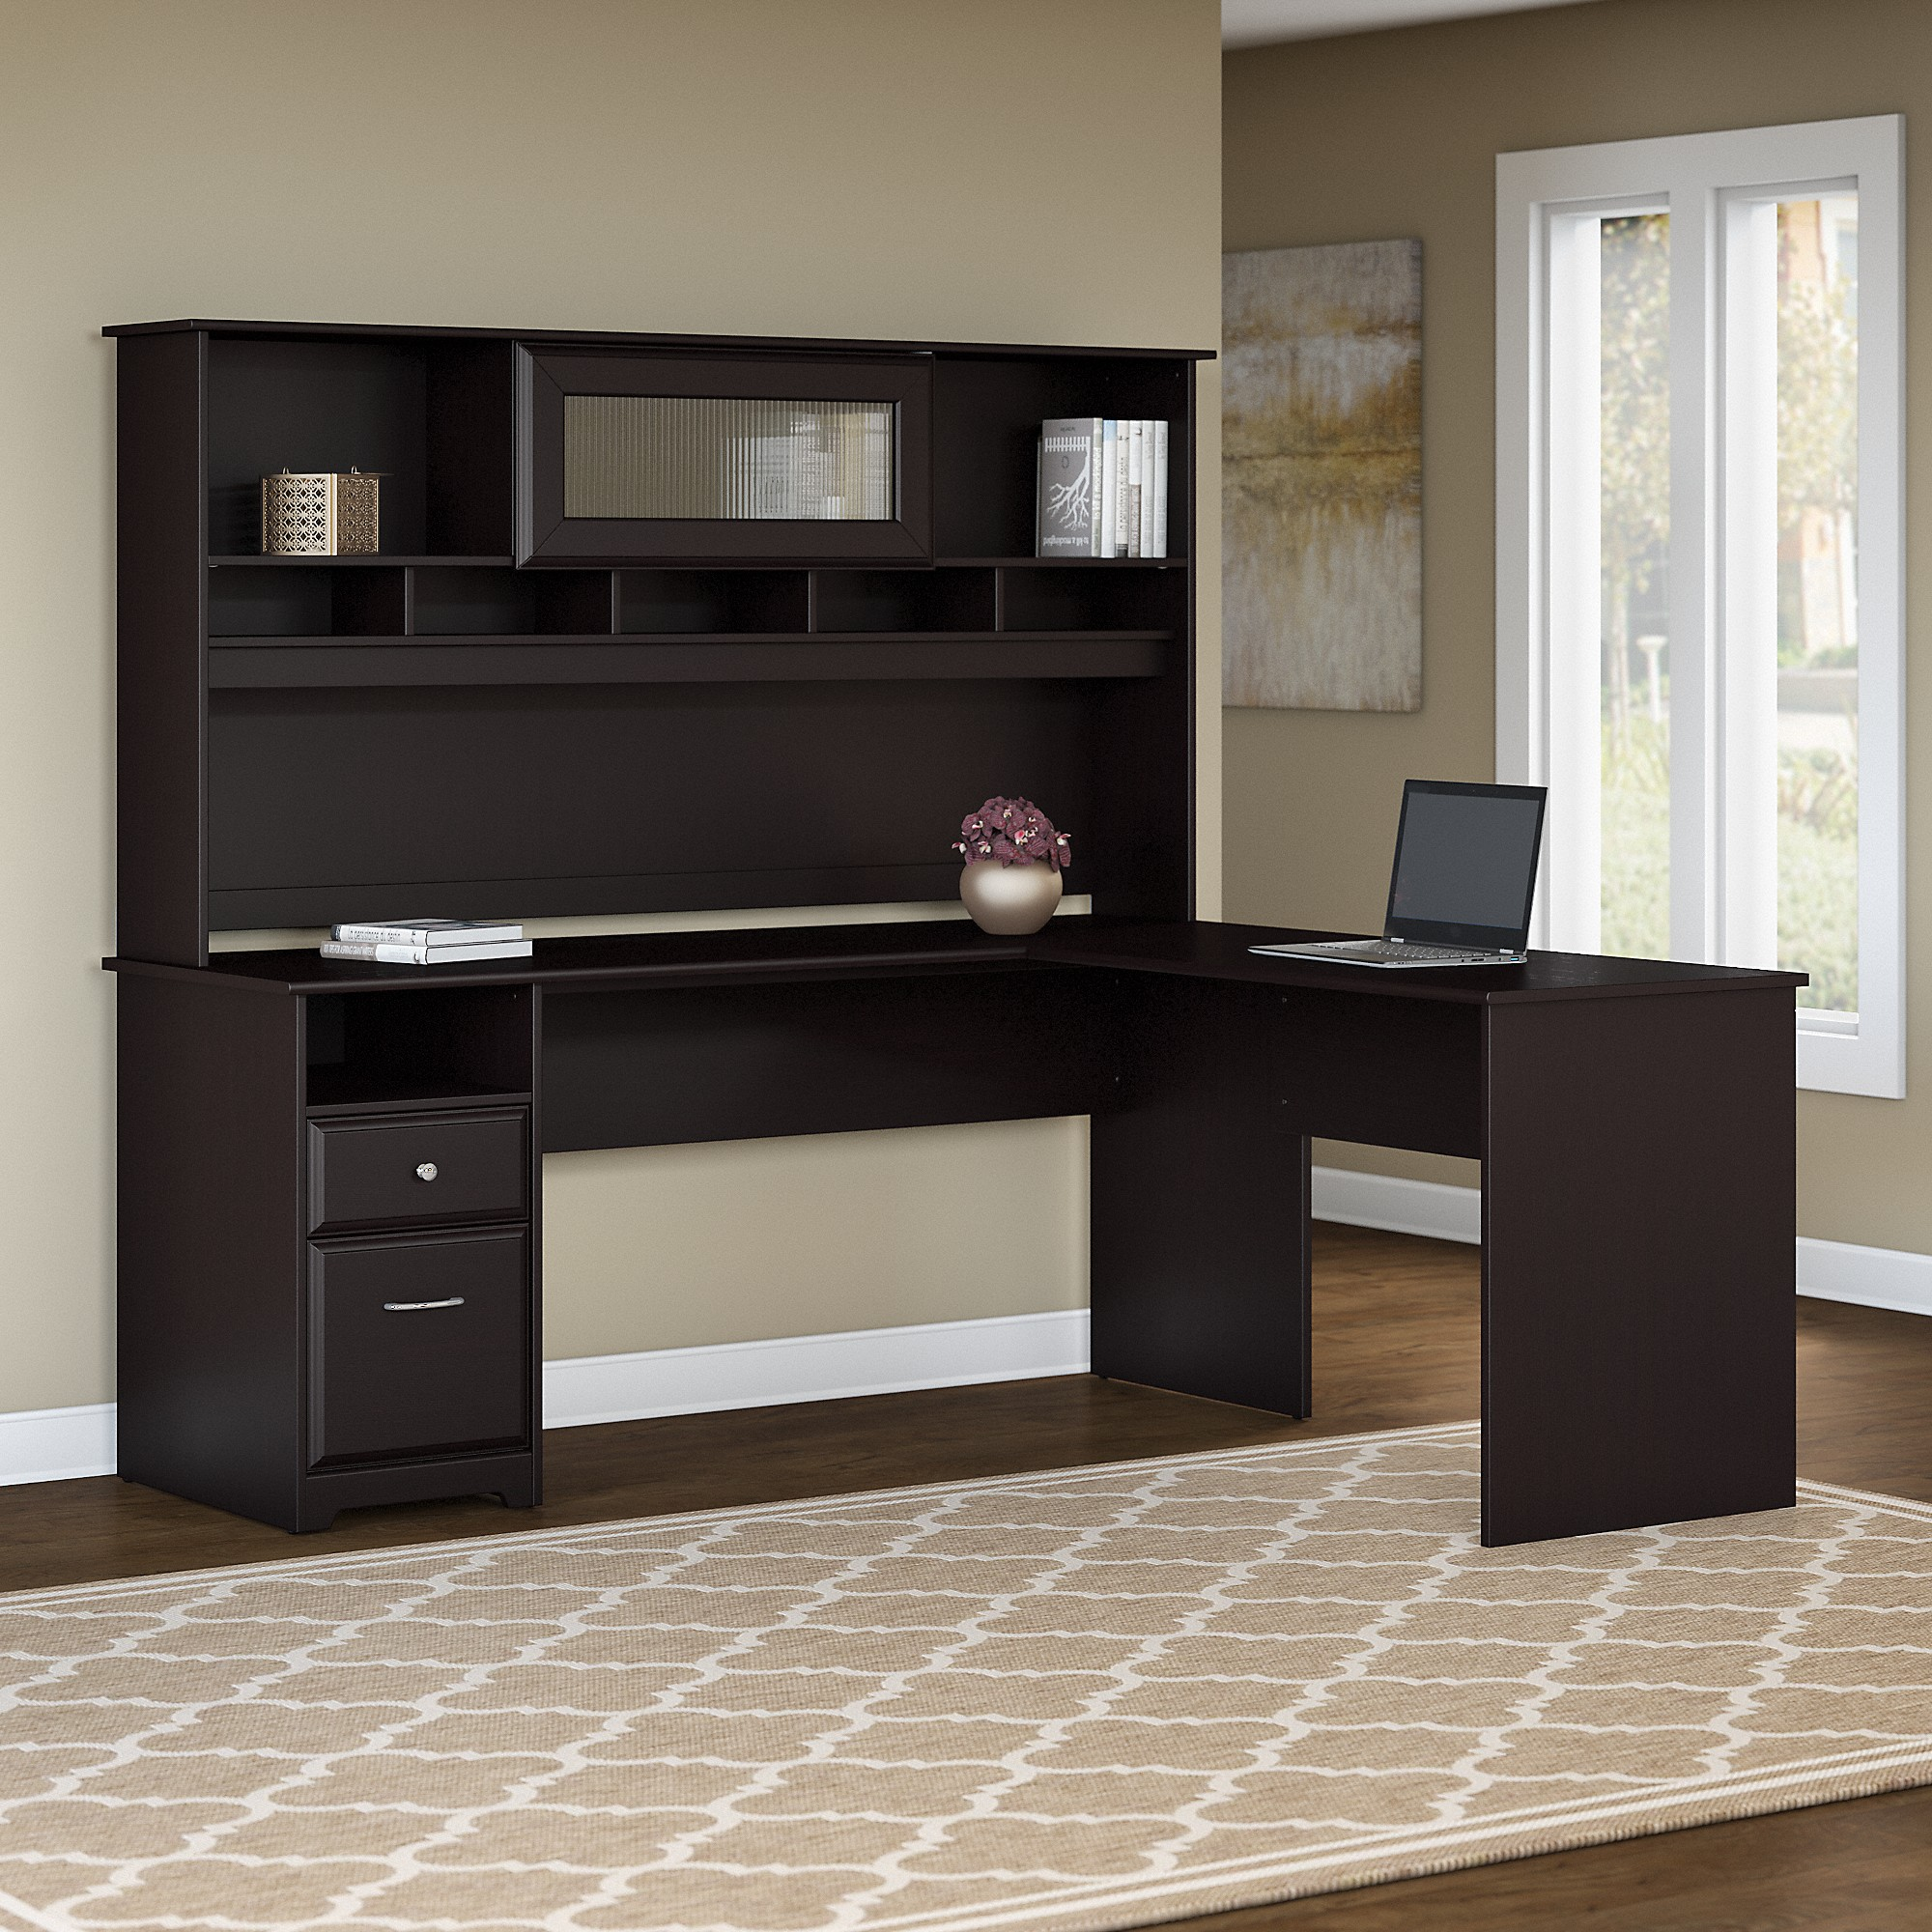 Bush Furniture Cabot 72W L Shaped Computer Desk with Hutch and Drawers